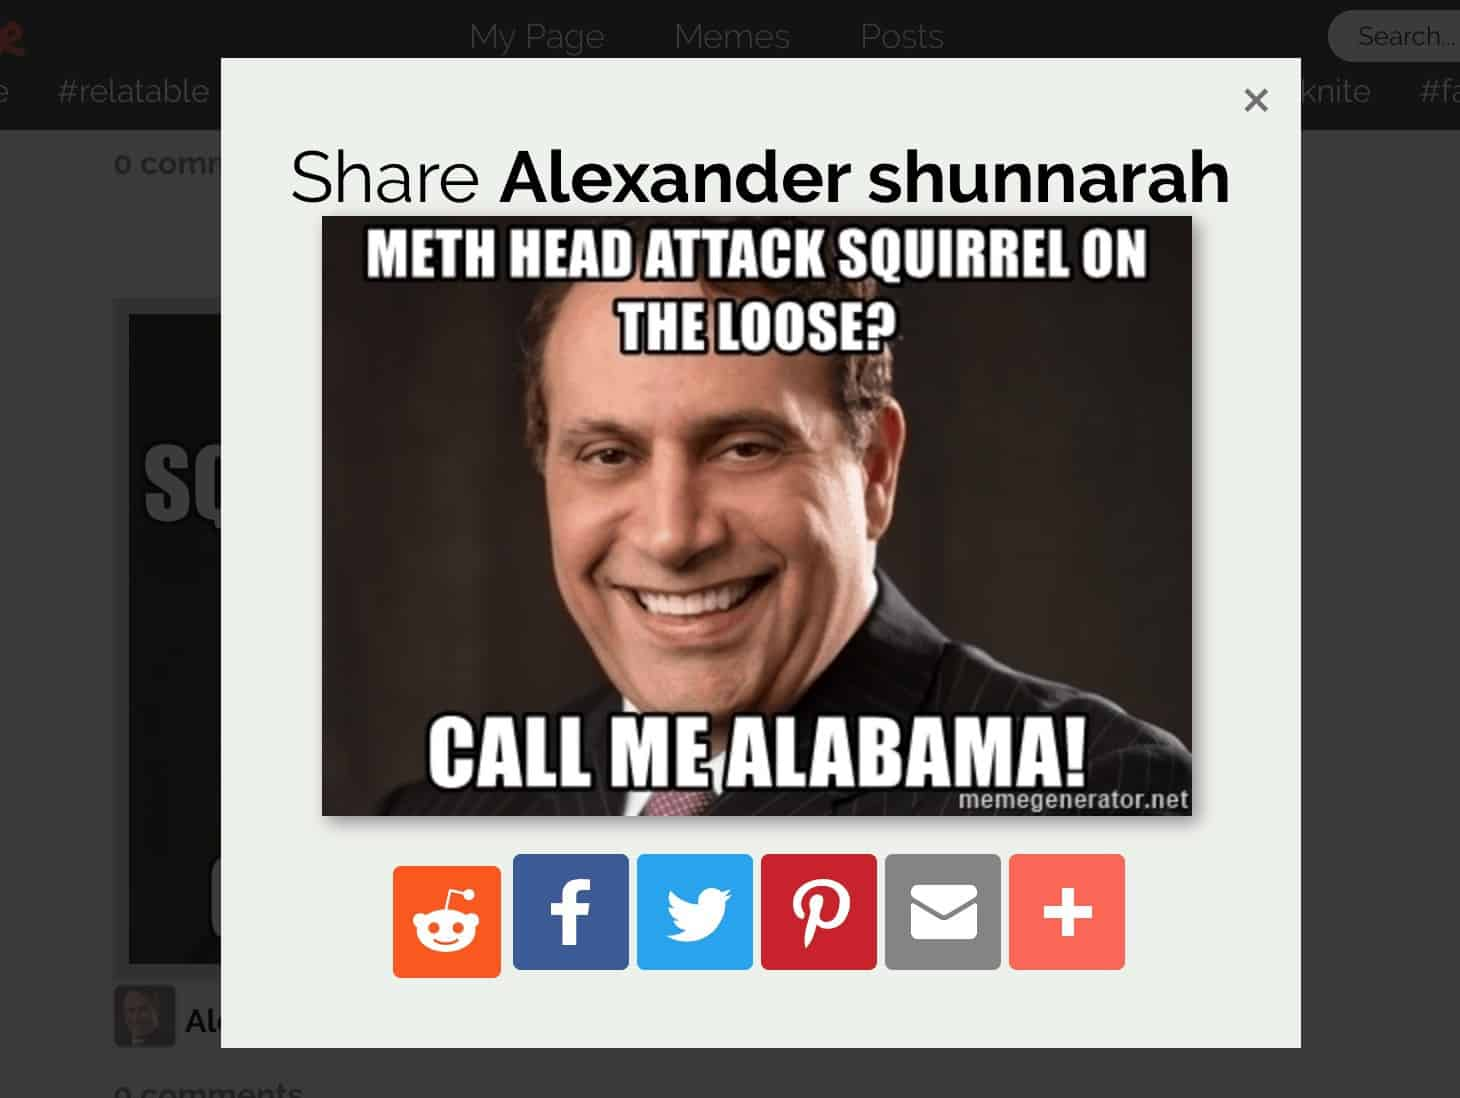 The Shunnarah Alabama Road Signs have elevated him to meme-status.